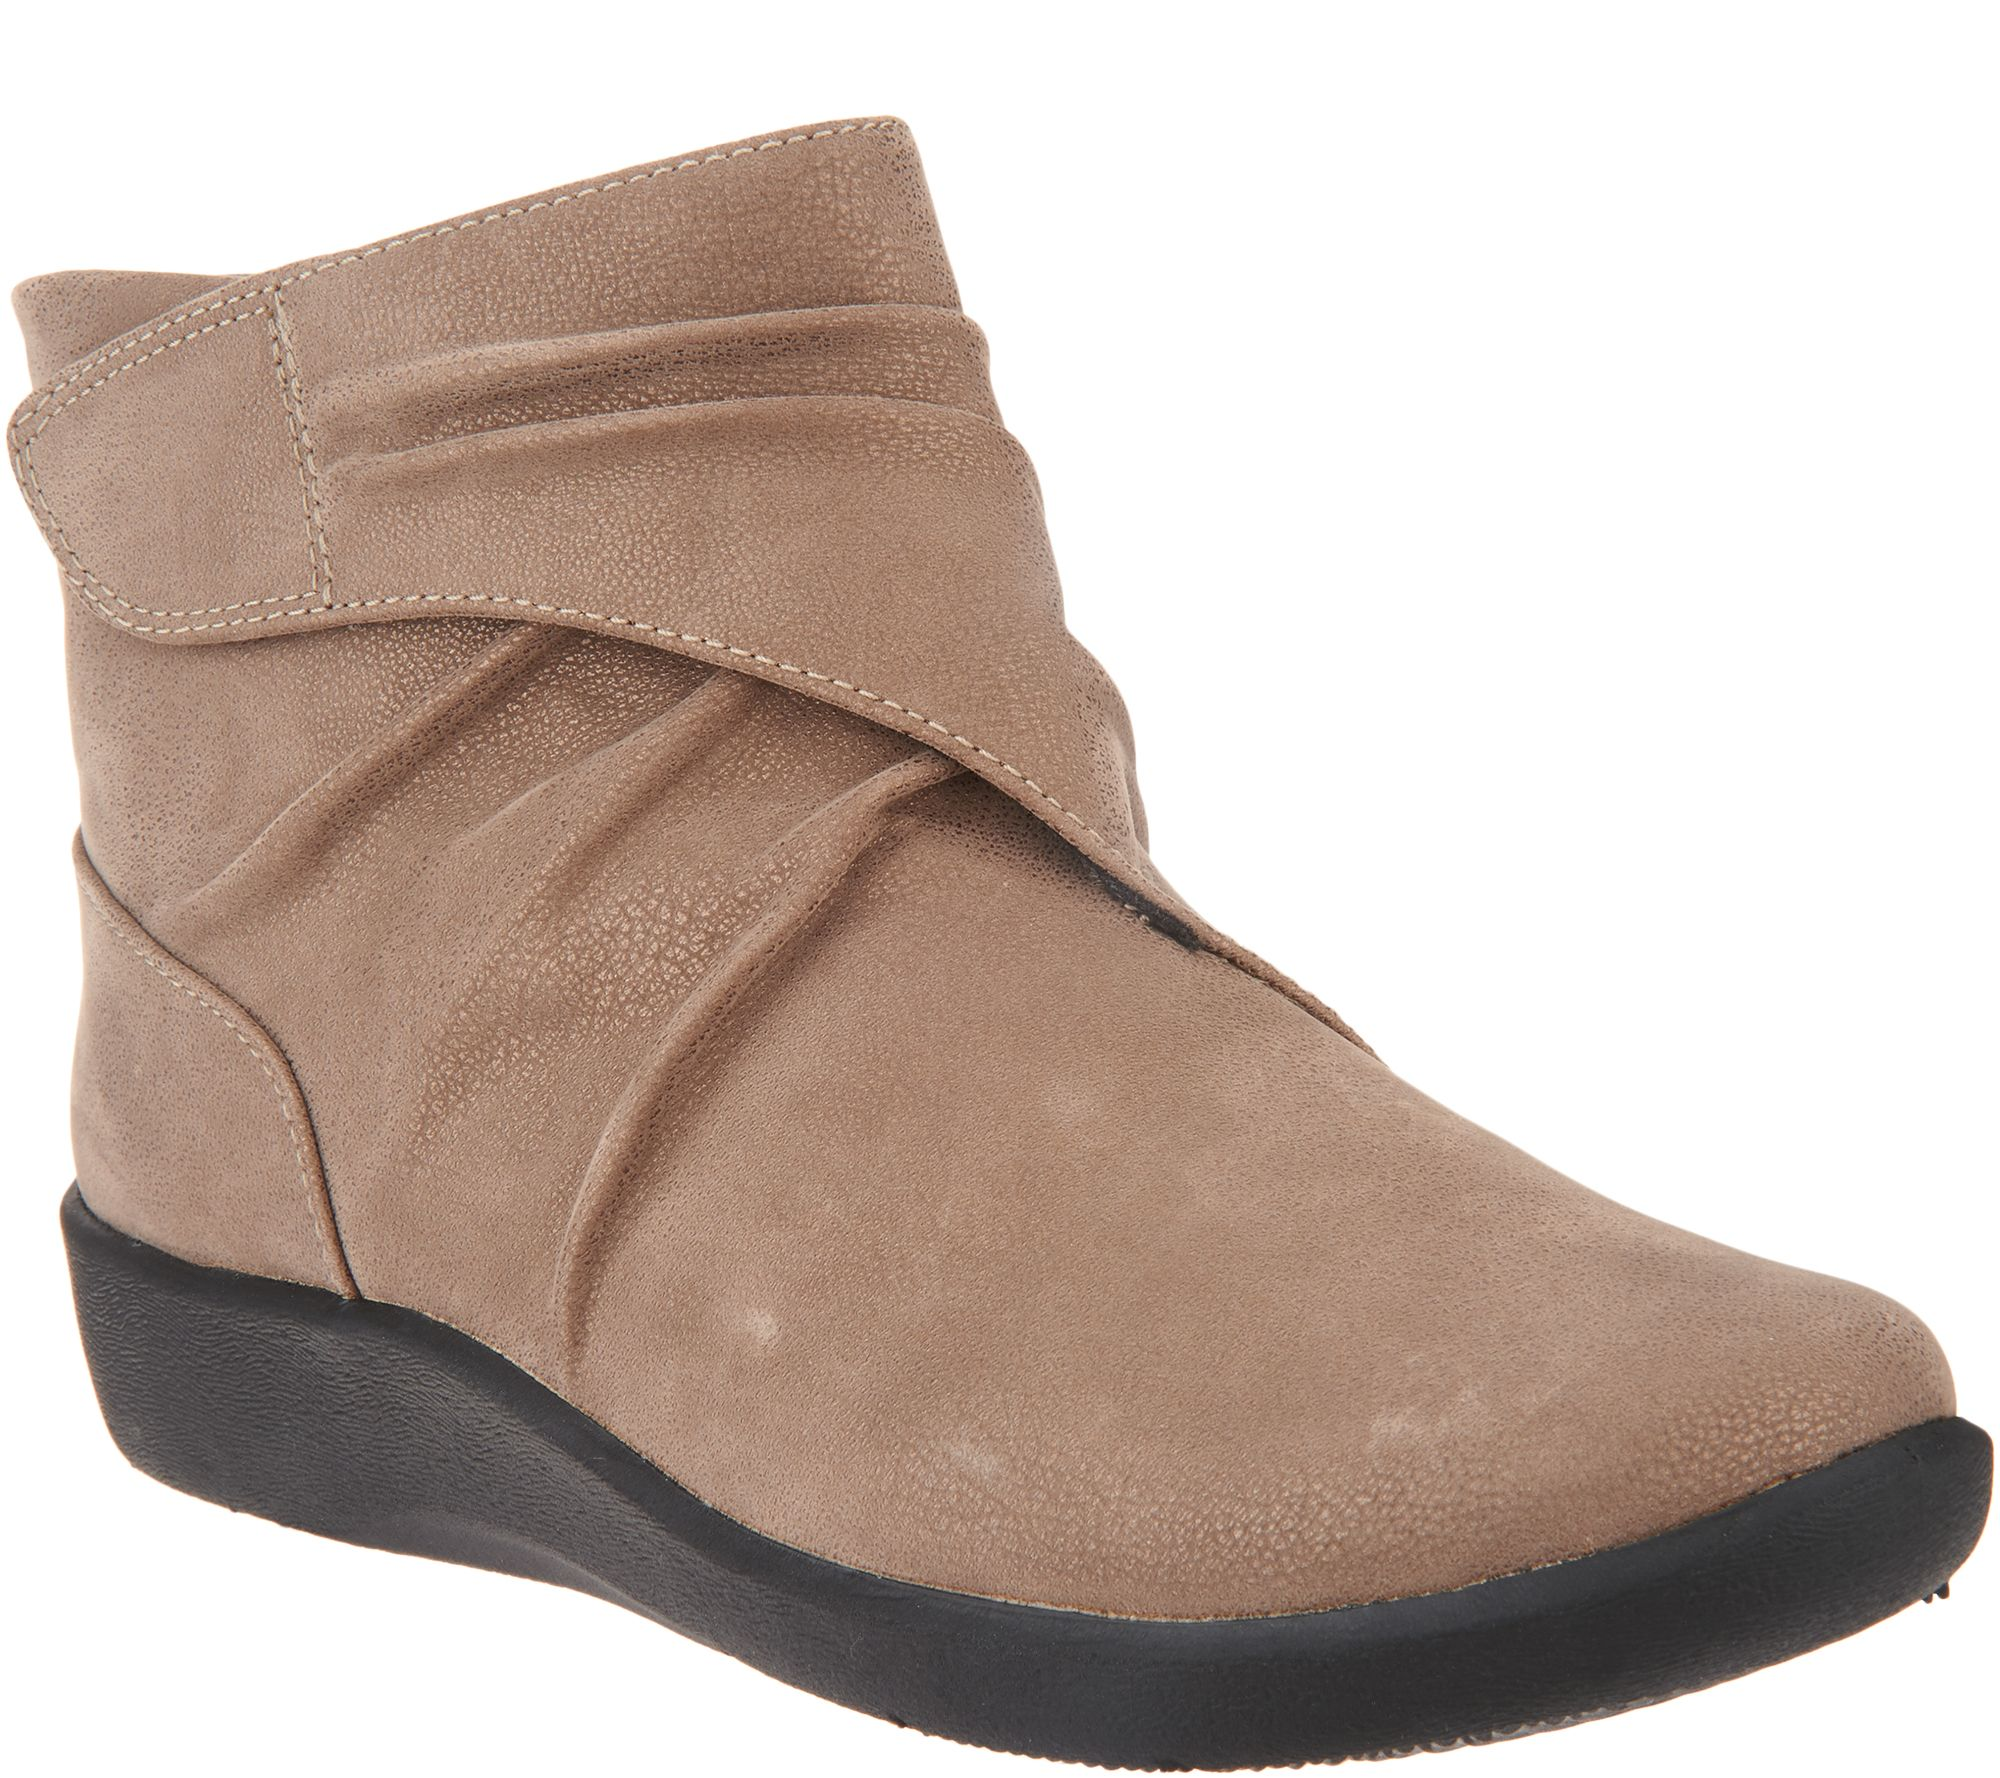 3ca020e06c12b CLOUDSTEPPERS by Clarks Ruched Ankle Boots - Sillian Tana - Page 1 — QVC.com